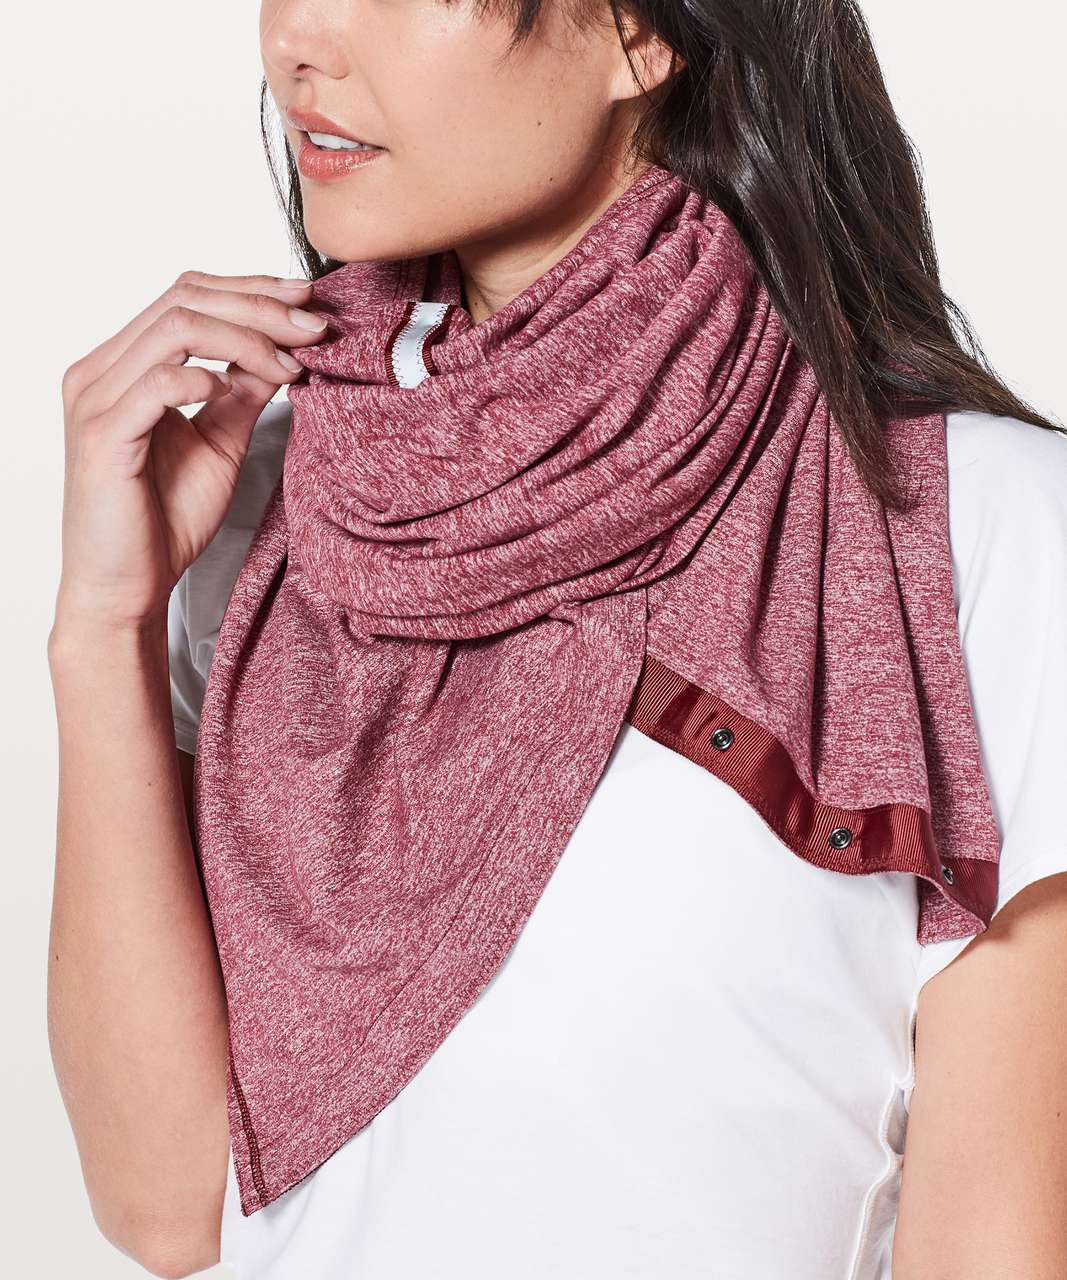 Lululemon Vinyasa Scarf *Rulu - Heathered Ruby Wine